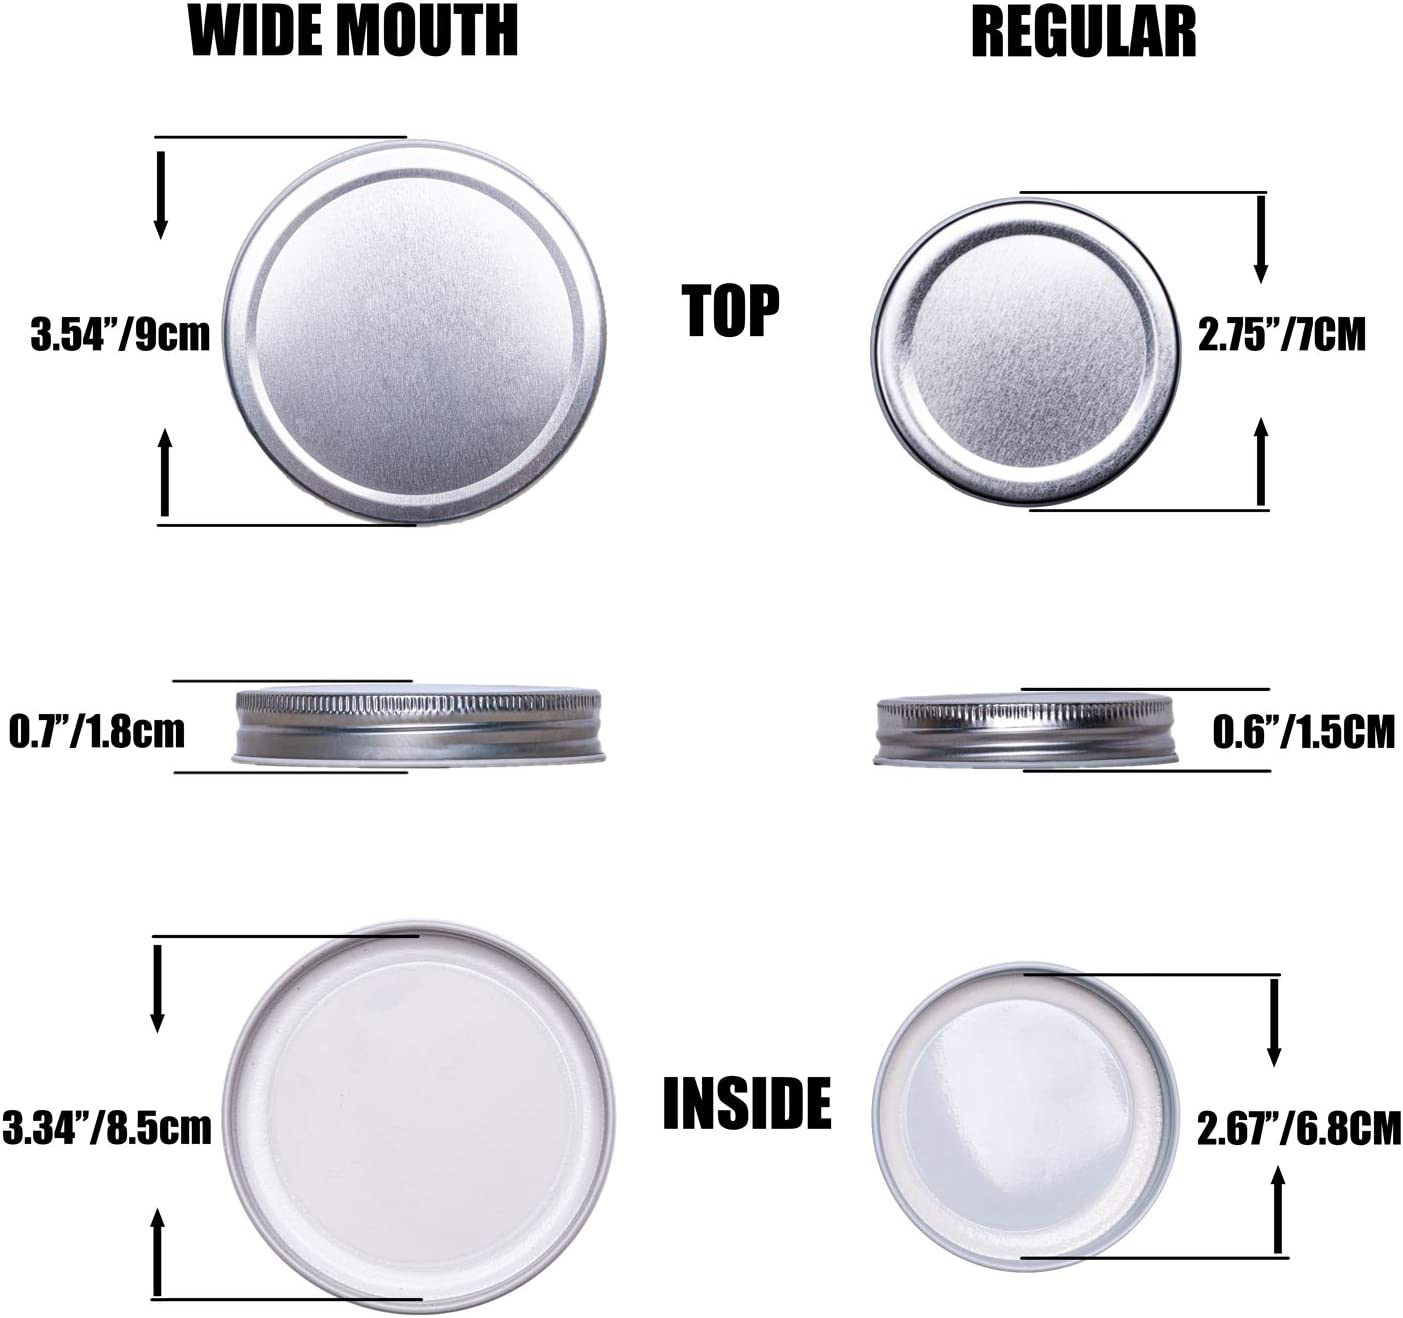 Leak Free and Air Tight Food-Grade Storage Caps for Canning Jars GUMBALL 16 Pack Mason Jar Lids 8 Wide Mouth /& 8 Regular Mouth Canning Lids